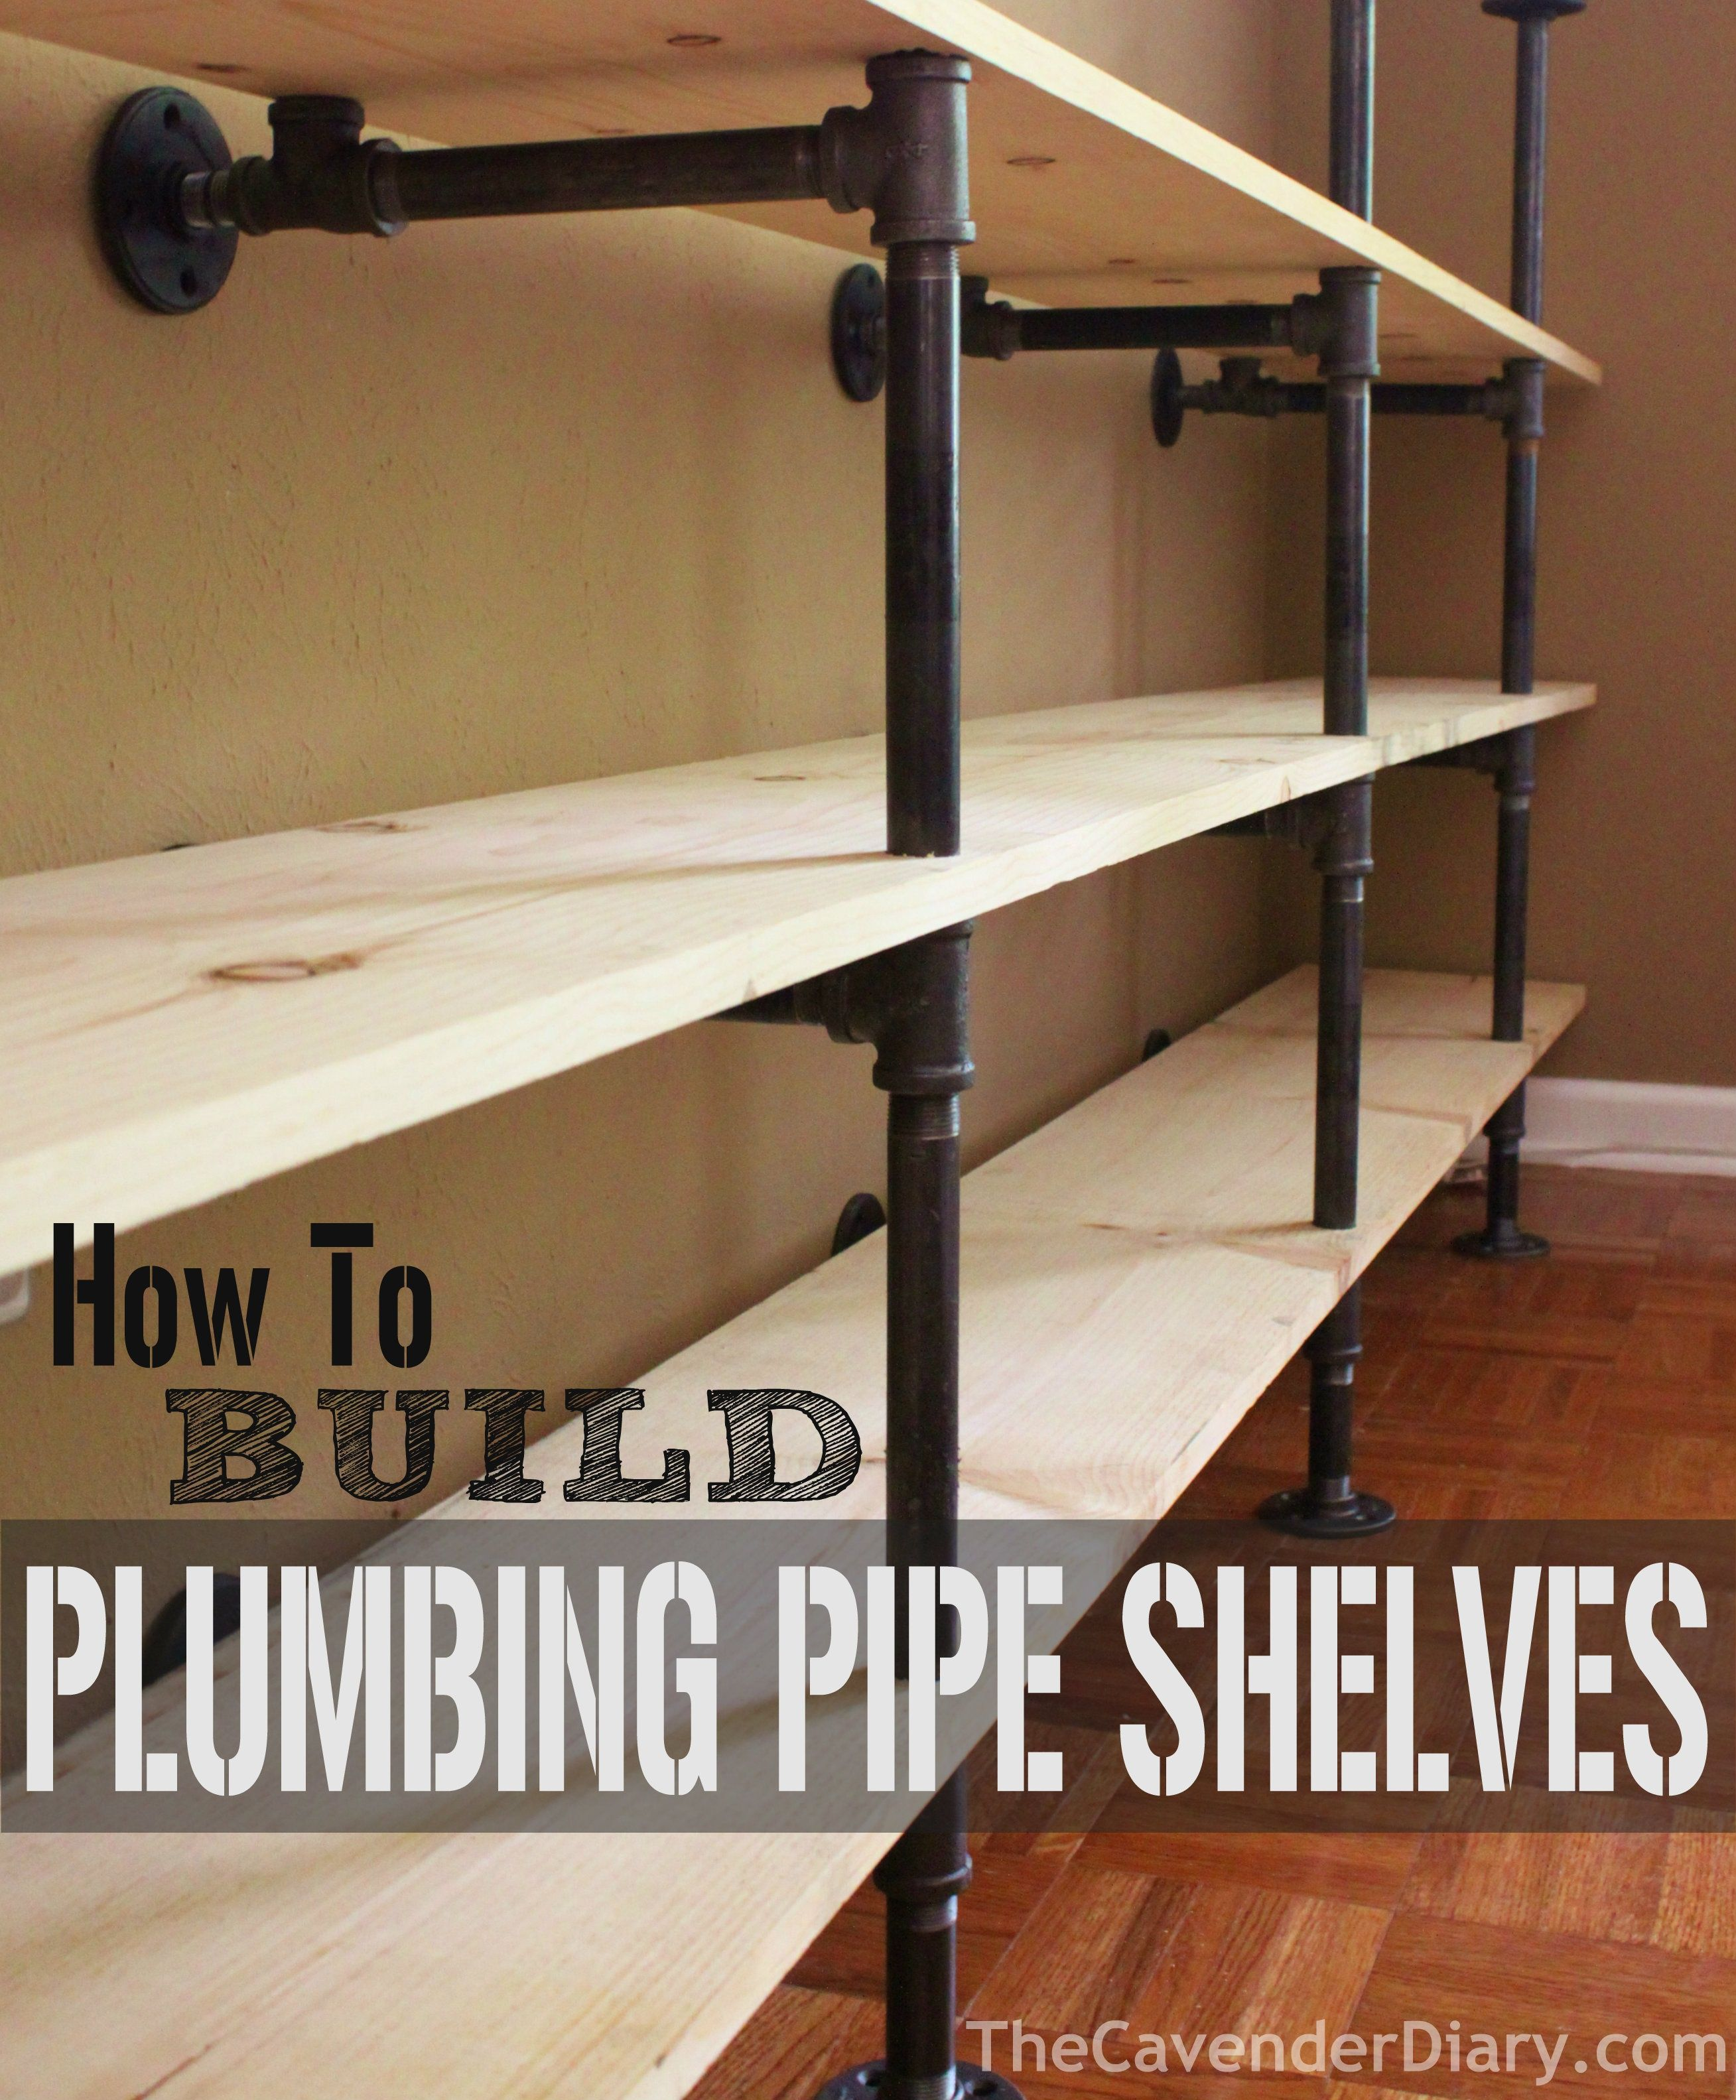 How To Build Plumbing Pipe Shelves   Practical Projects   Plumbing